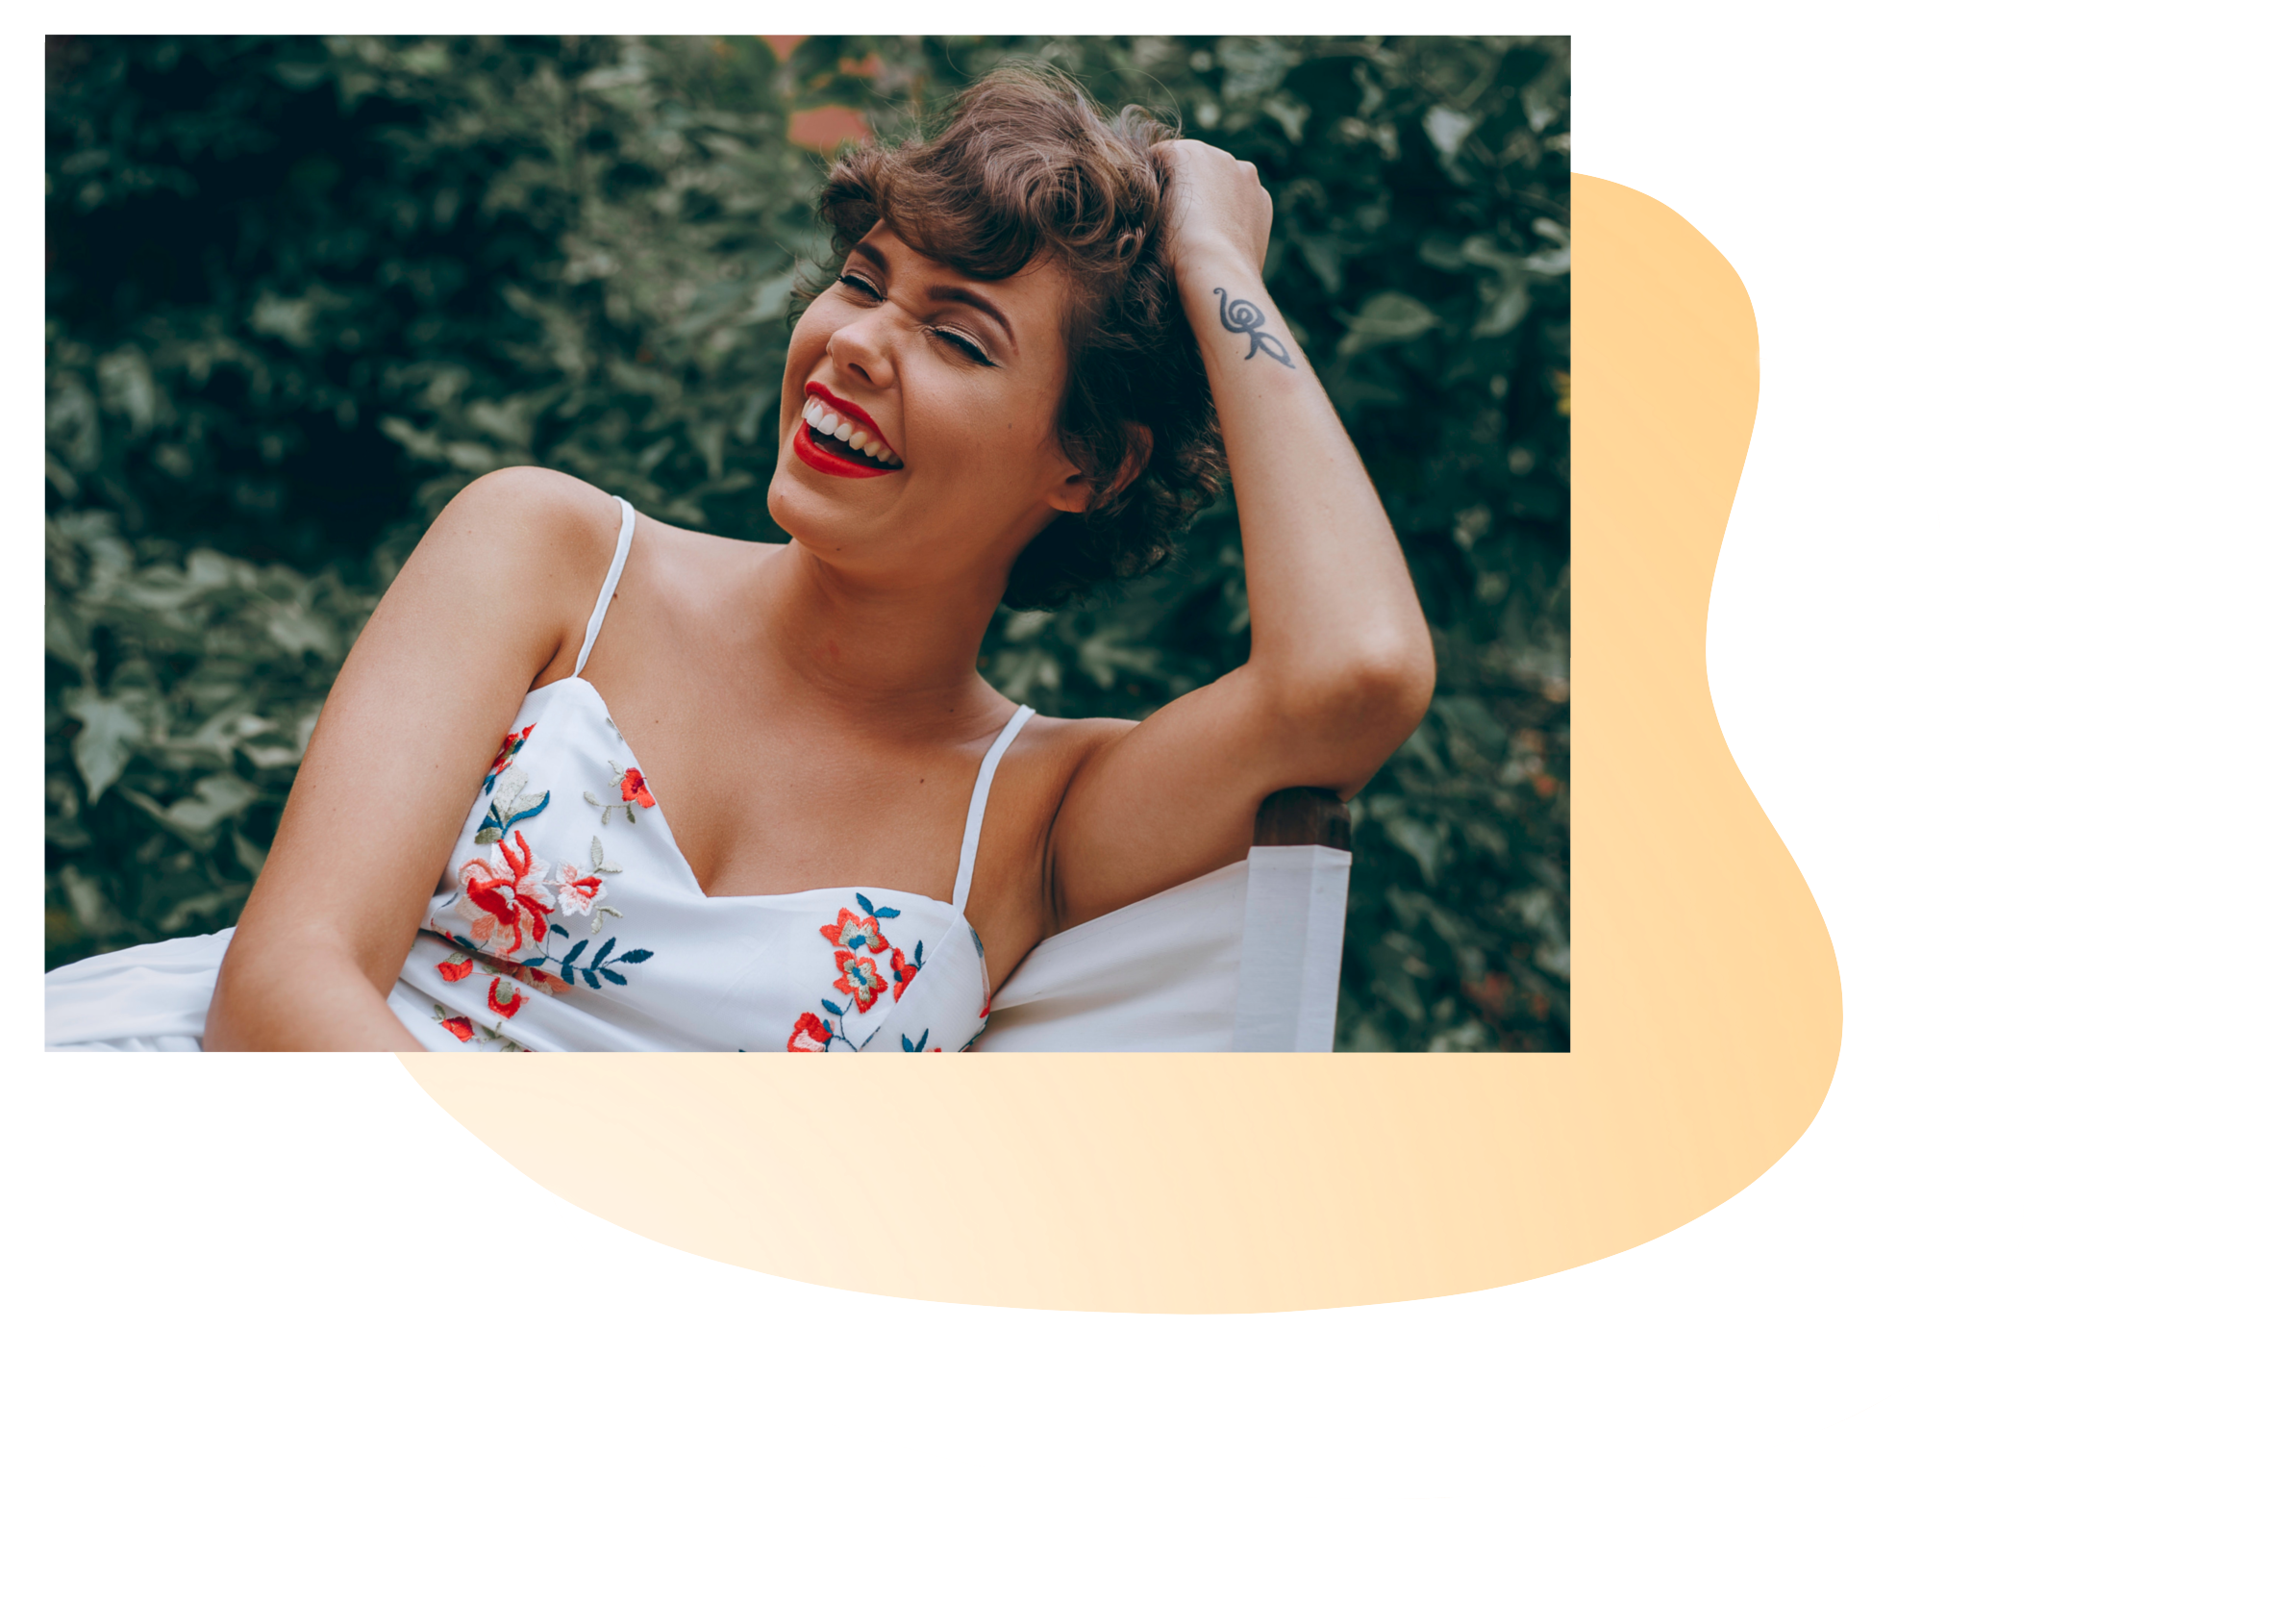 Image of a young woman relaxing and smiling. This image represents how people feel after doing psychiatric consultations in New York City with a psychiatrist or psychiatric nurse practitioner.   11211   10005   10003